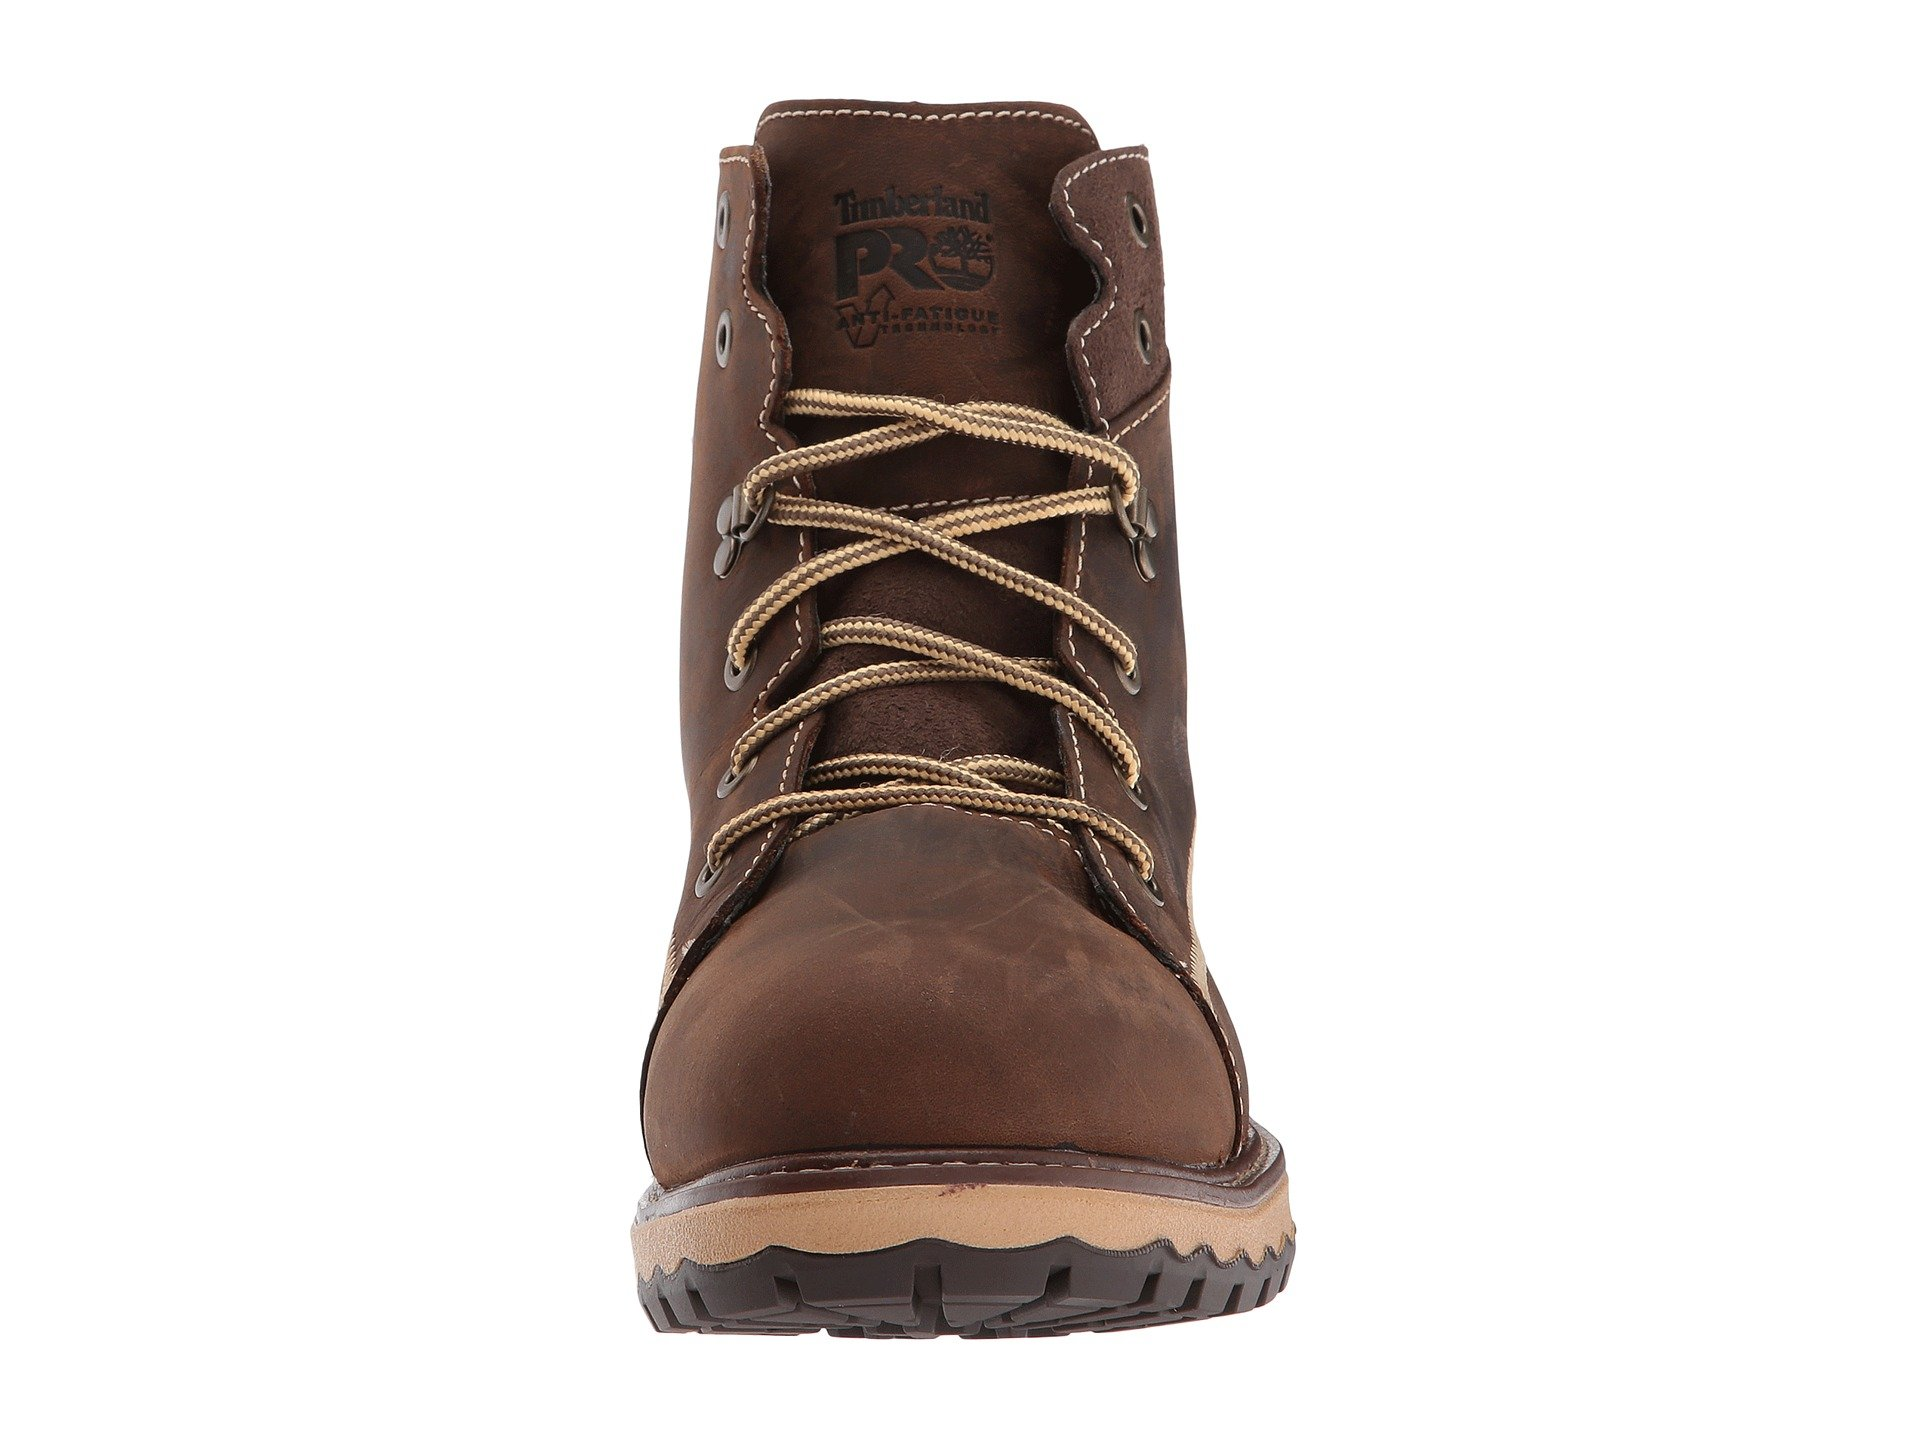 Full Timberland Alloy Safety 6